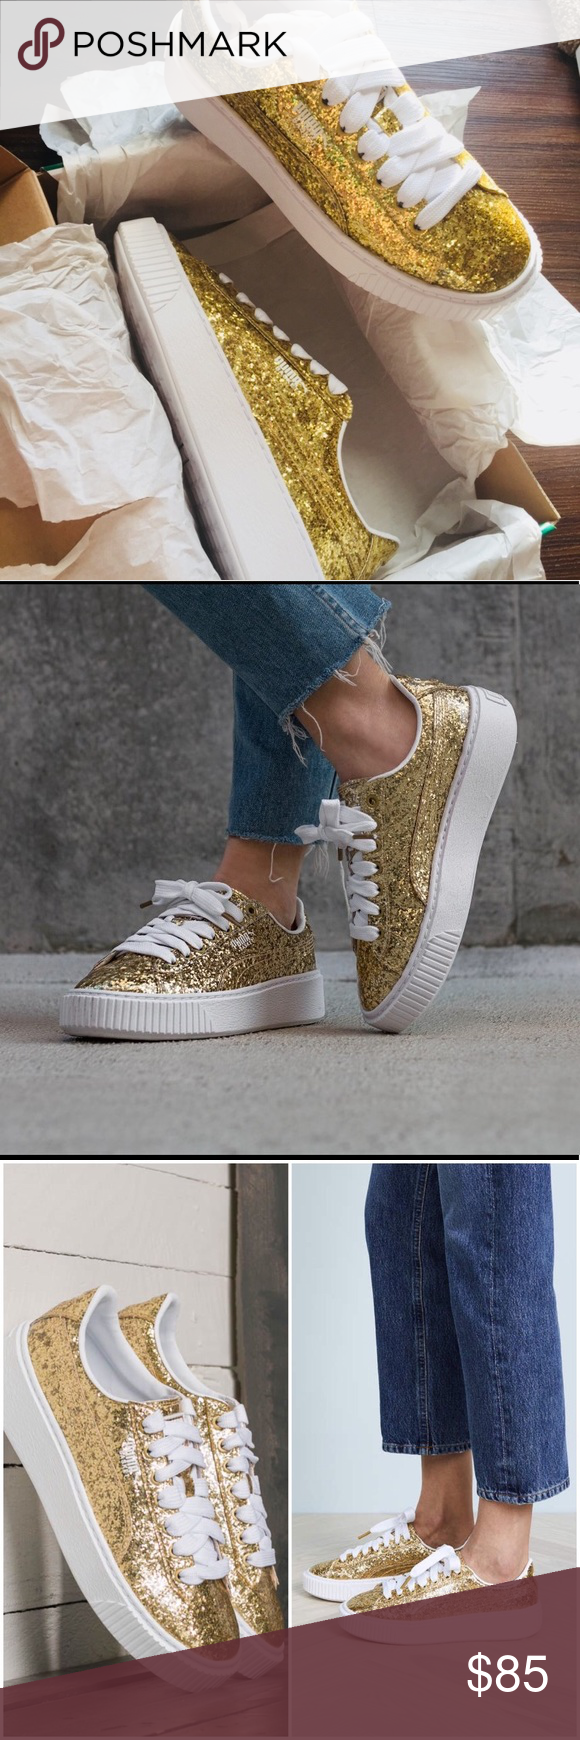 a347d485976858 Puma Basket Platform Gold Glitter Sneakers Puma Basket Gold Glitter  Sneakers. Synthetic leather upper with gold glitter. White logos. New in  box. Size 7.